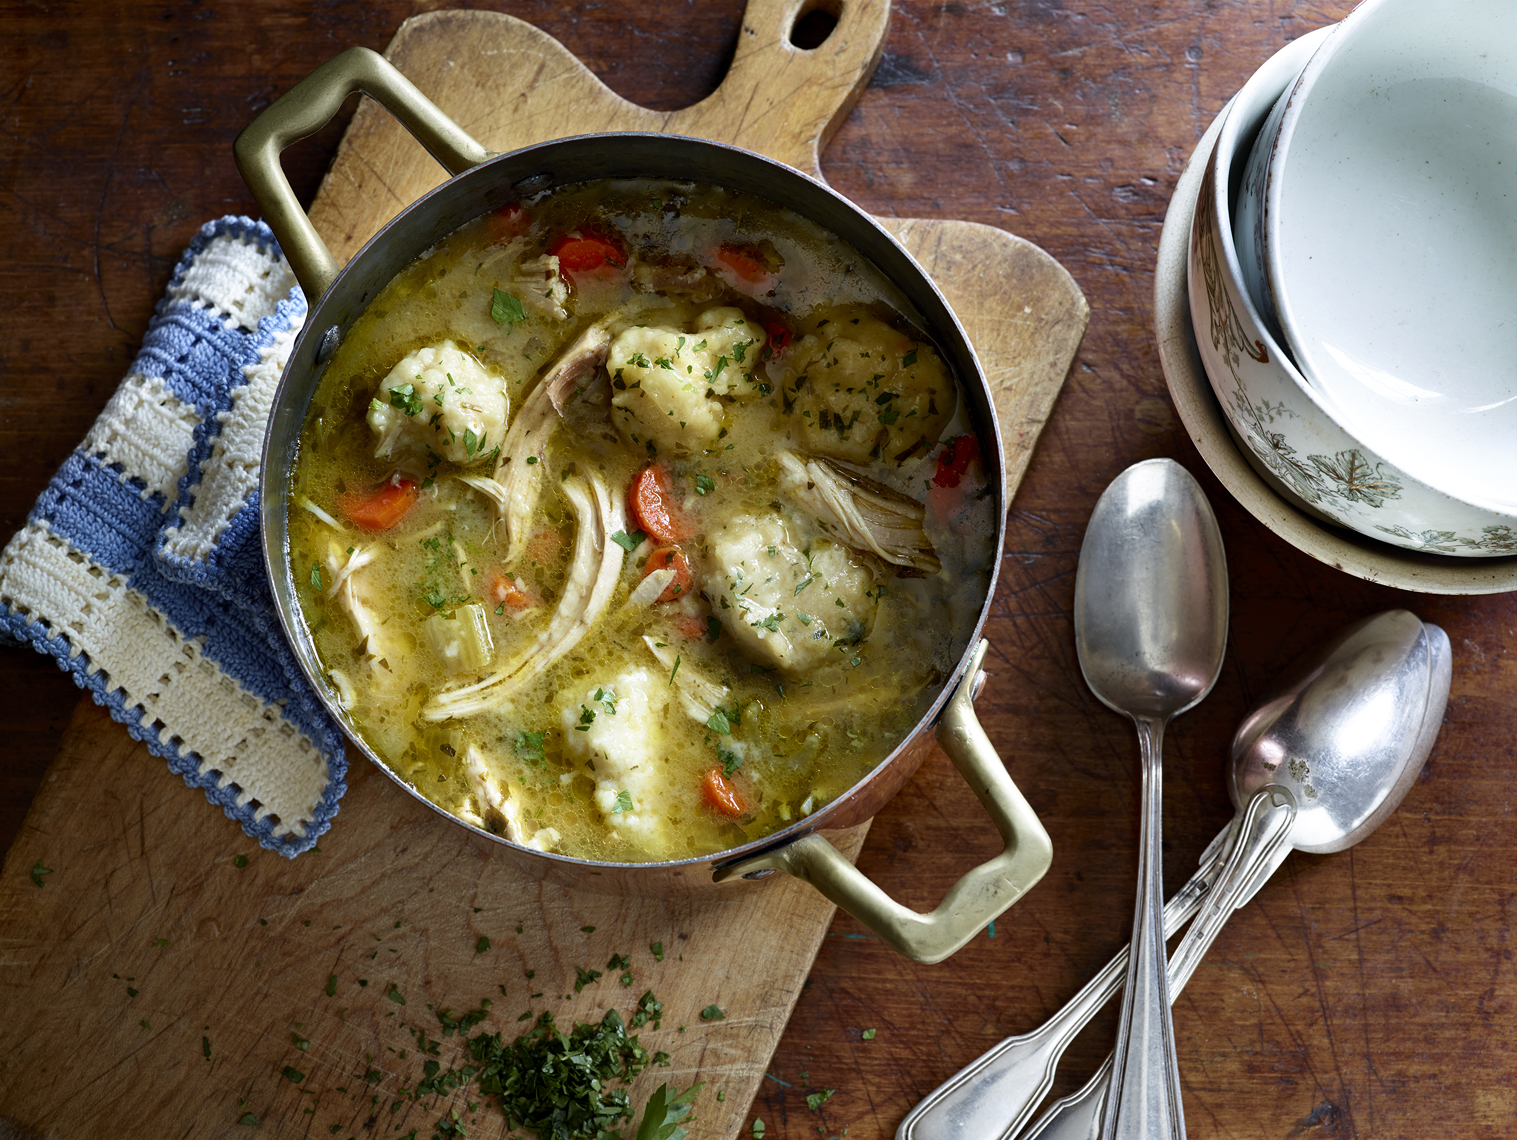 LEIGH_BEISCH_Chicken_Stew_Dumplings_10909